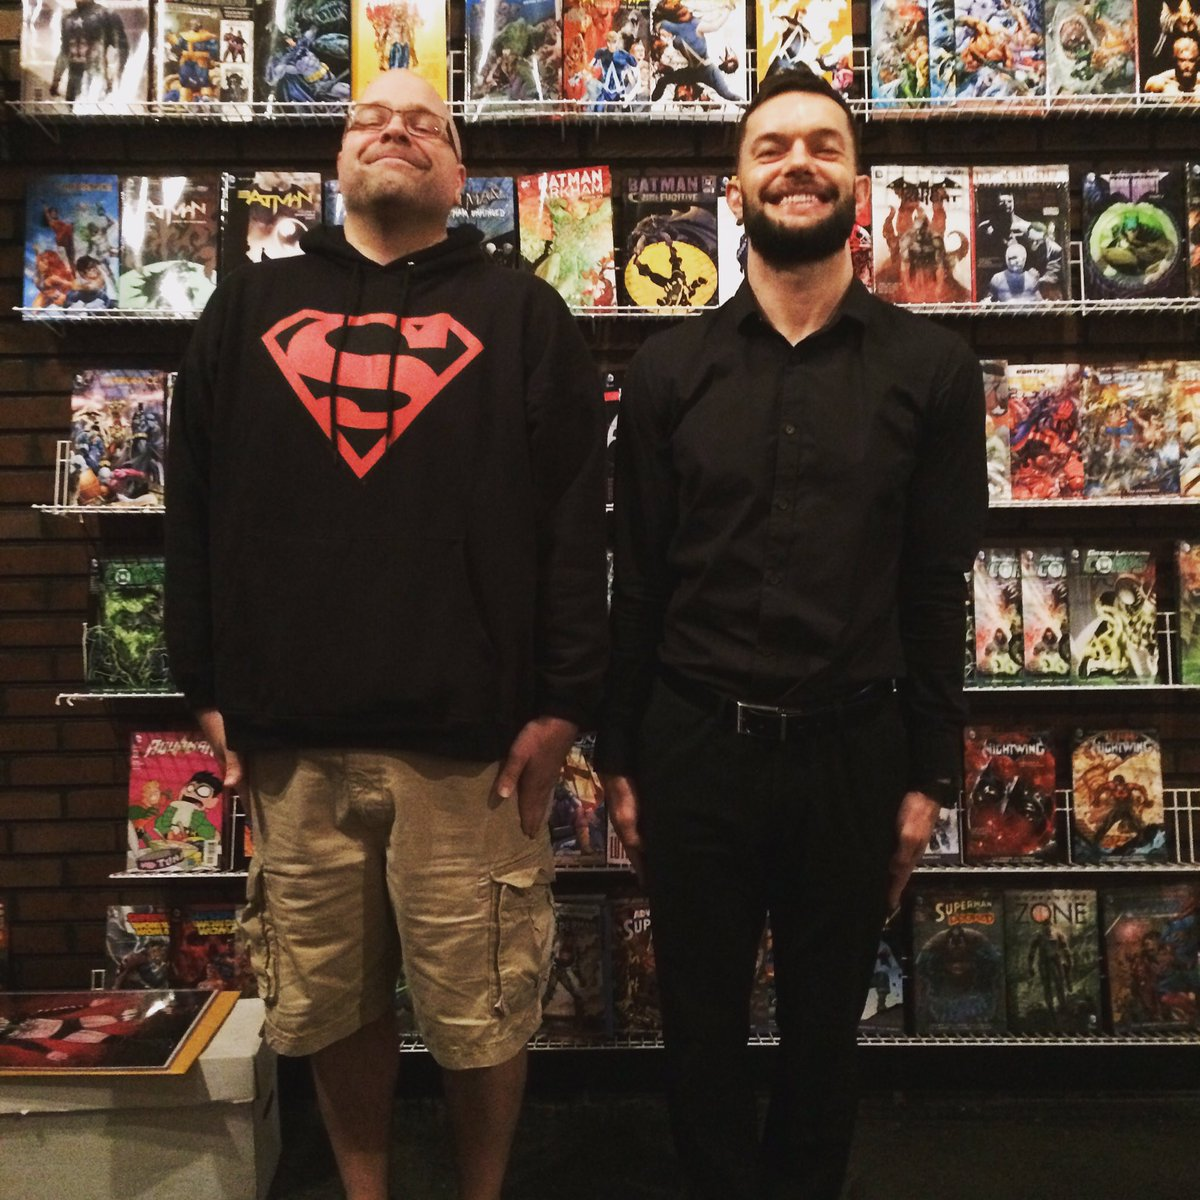 When you take a picture with @finnbalor you gotta do the #finnfreeze @AdventurelandSt https://t.co/HpvGOefJRL